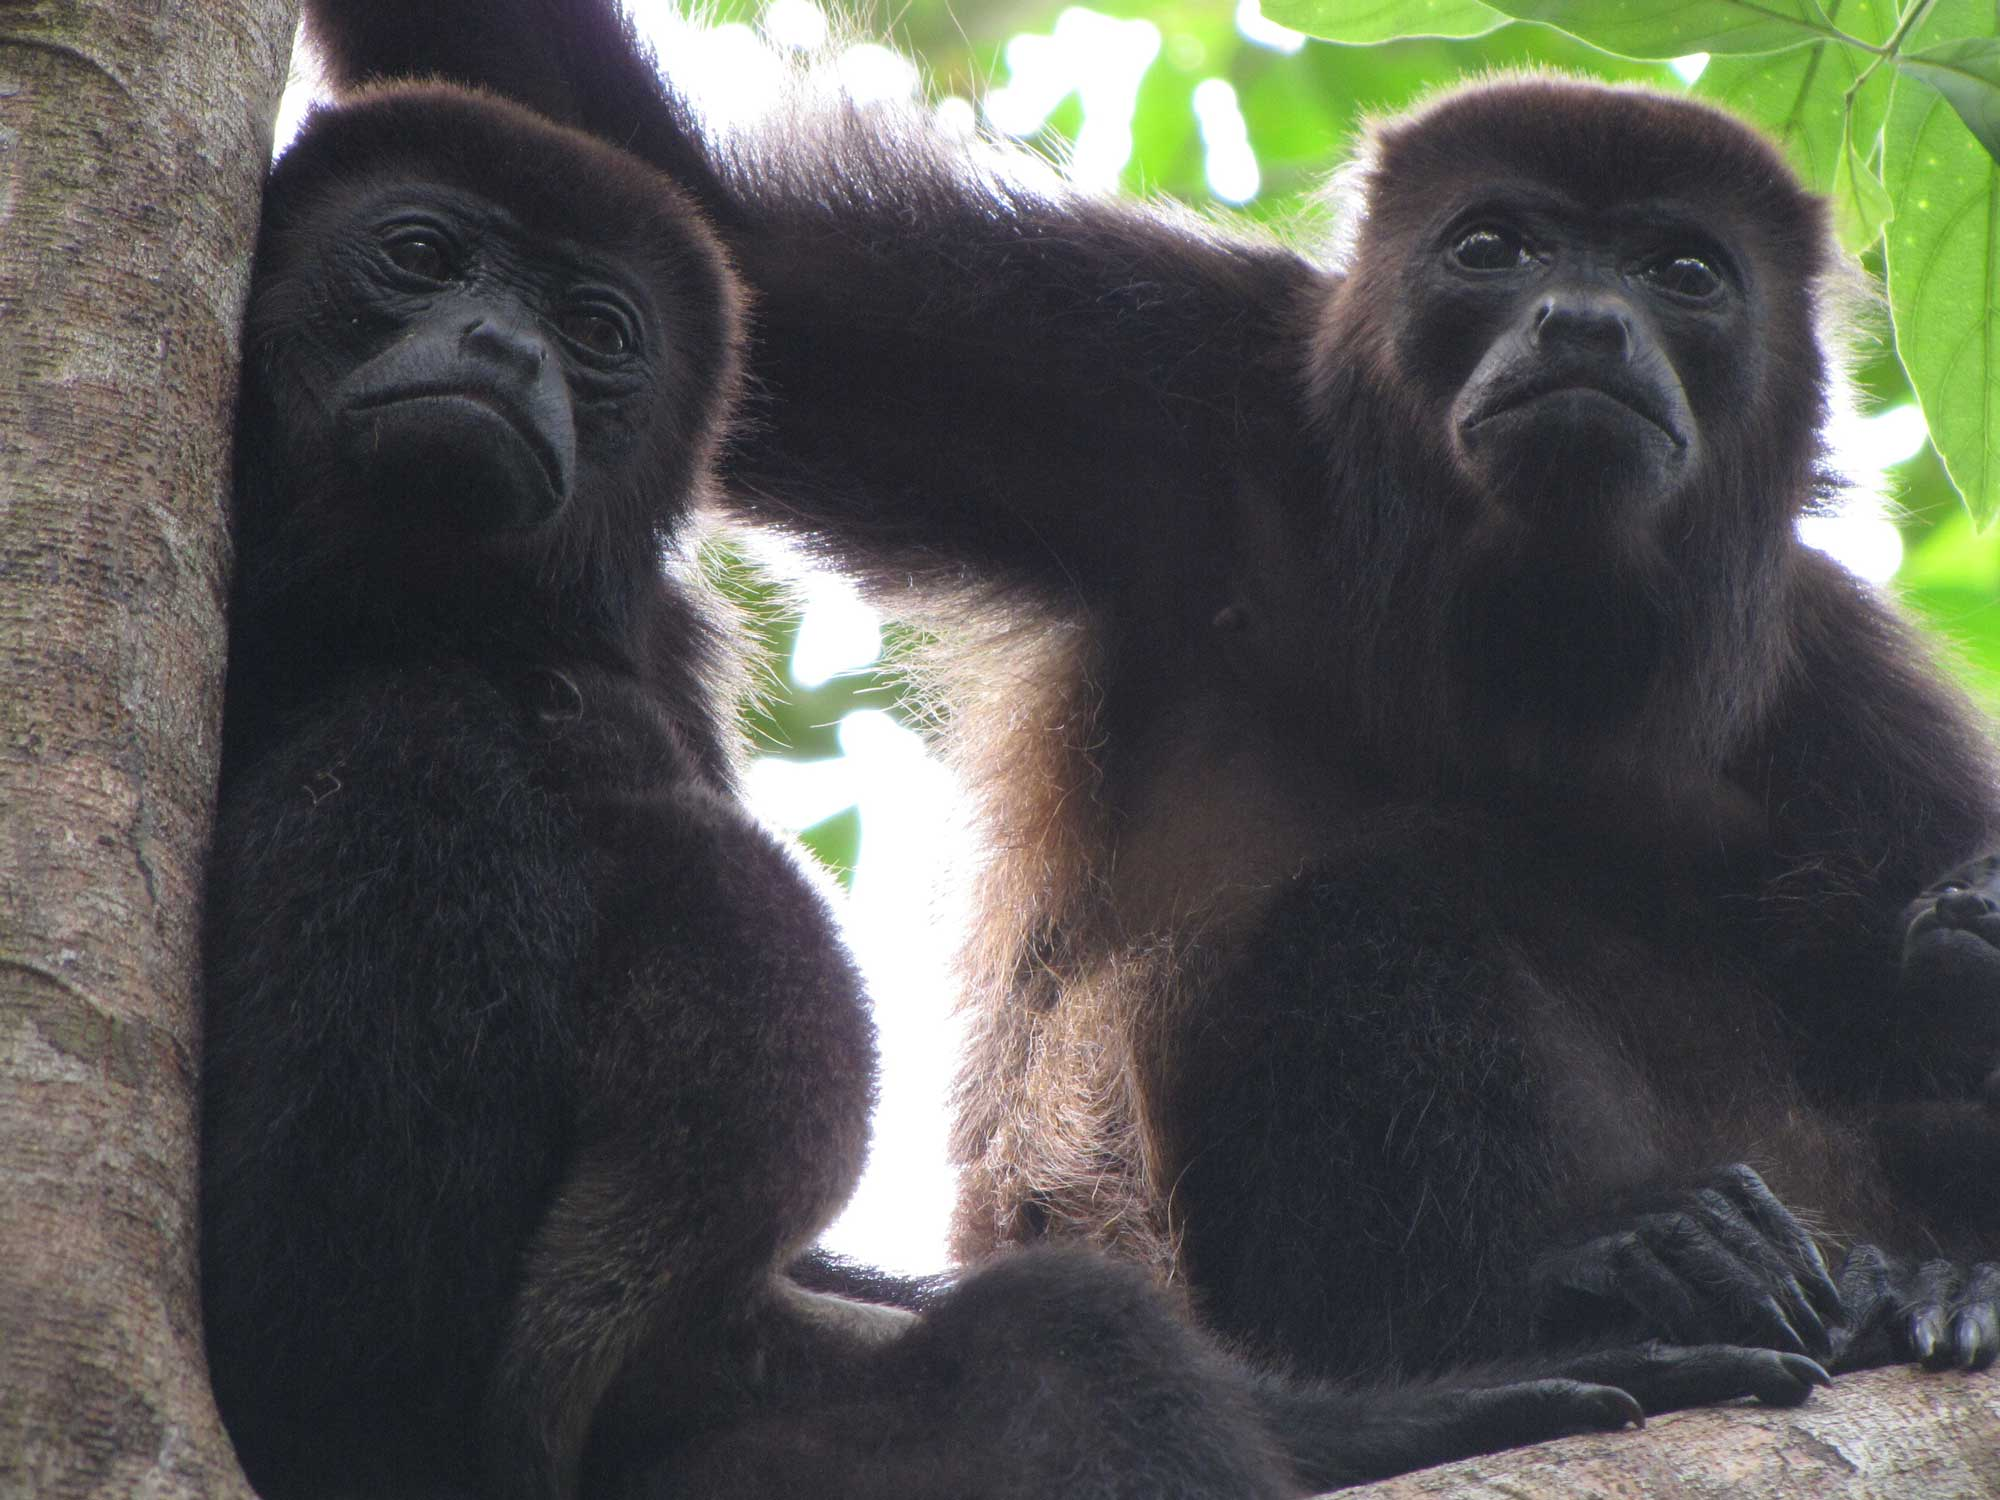 Two mantled howler monkey females with babies. Image credit: Milagros Gonzalez